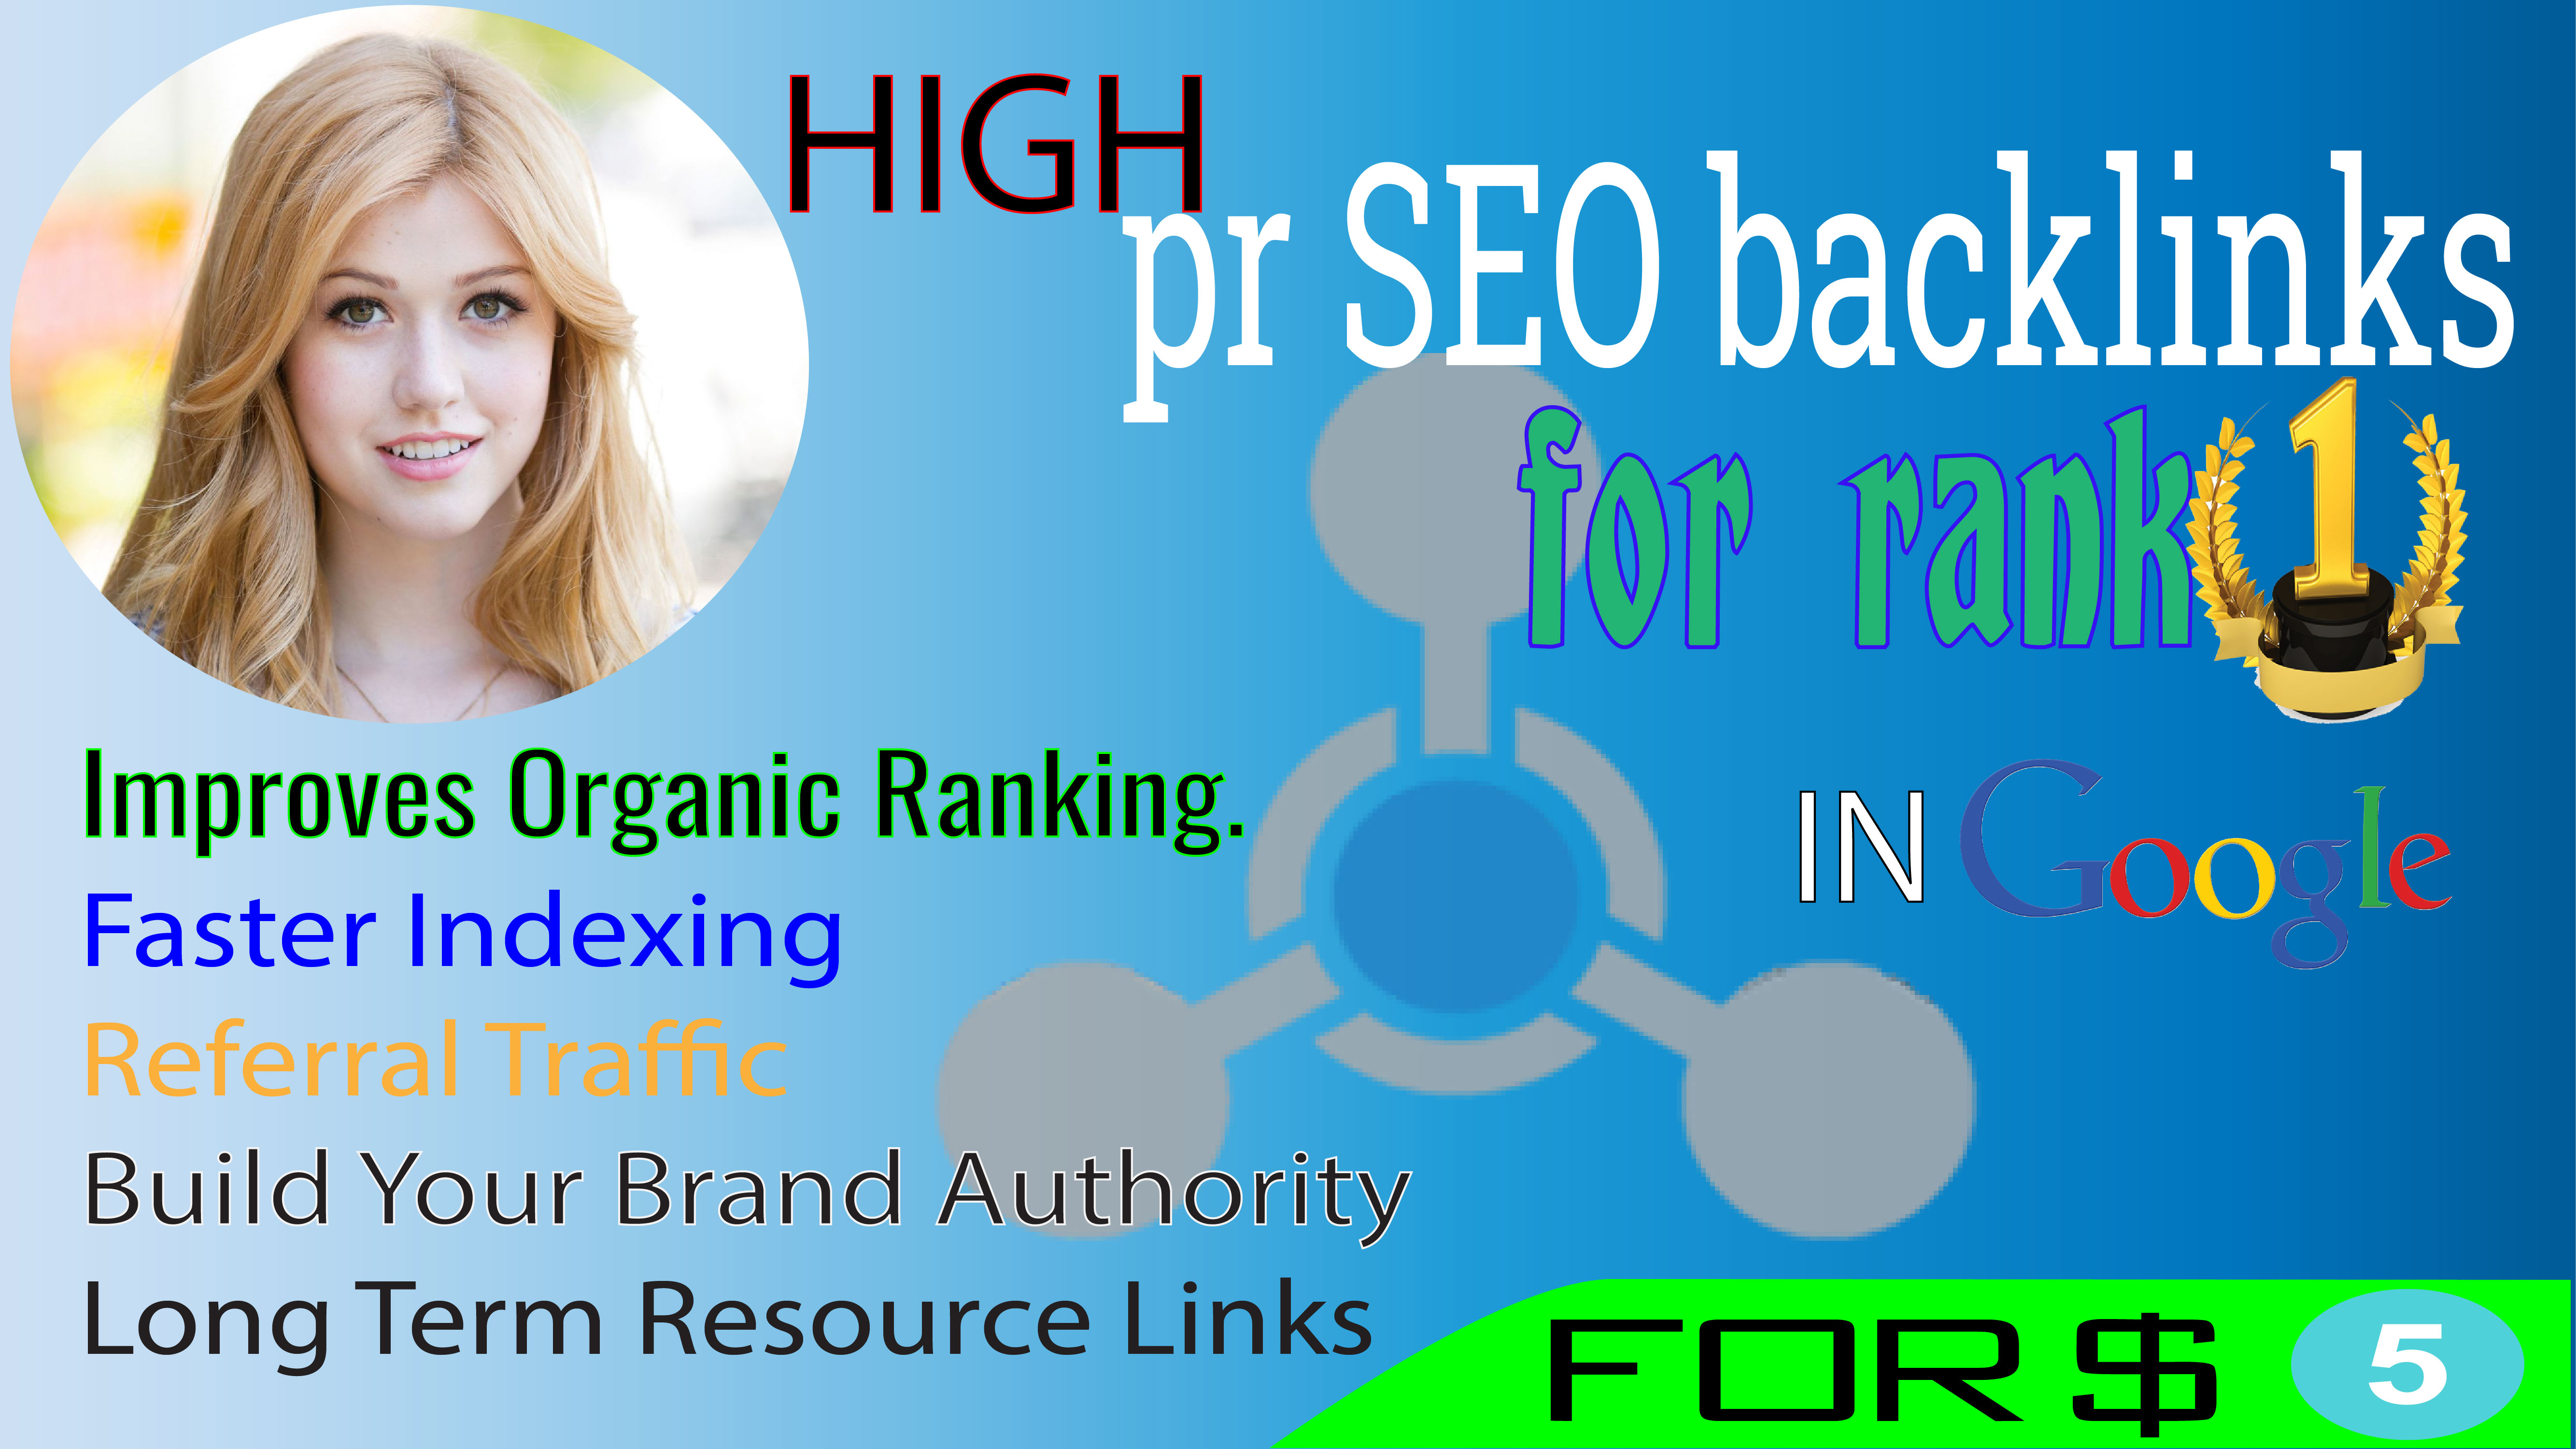 I will do high pr SEO backlinks for rank 1 in google